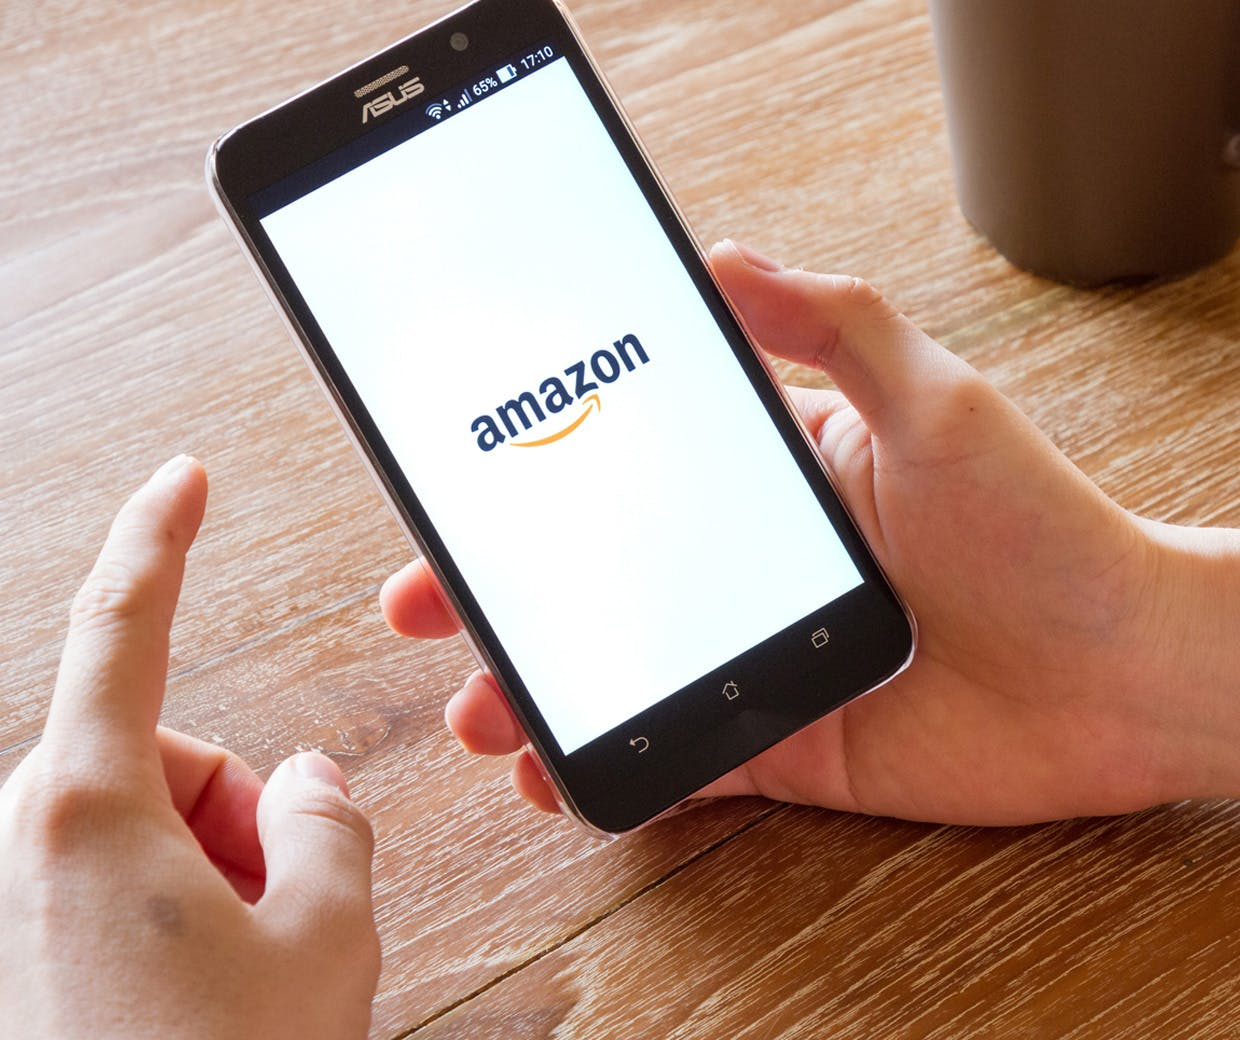 Amazon is now the world's most valuable brand